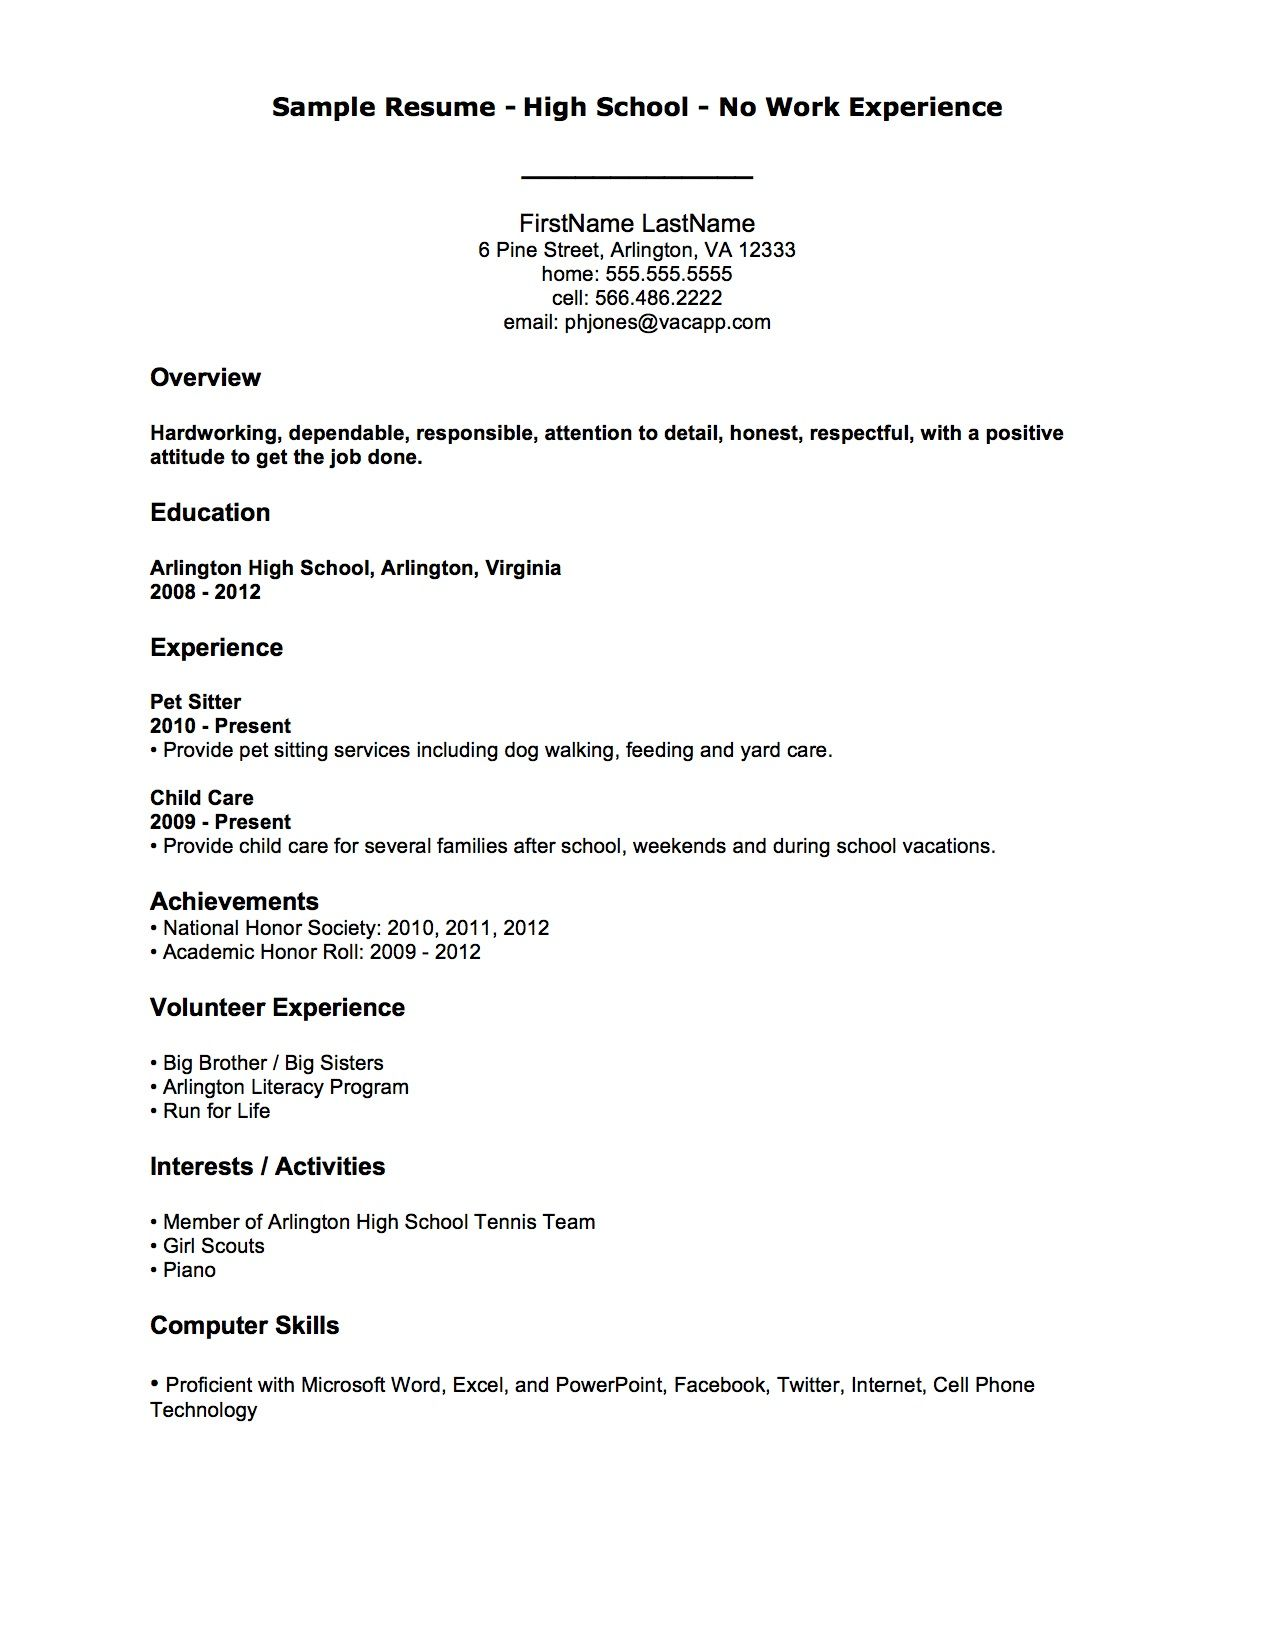 no experience resumes | Help! I Need a Resume, but I Have No